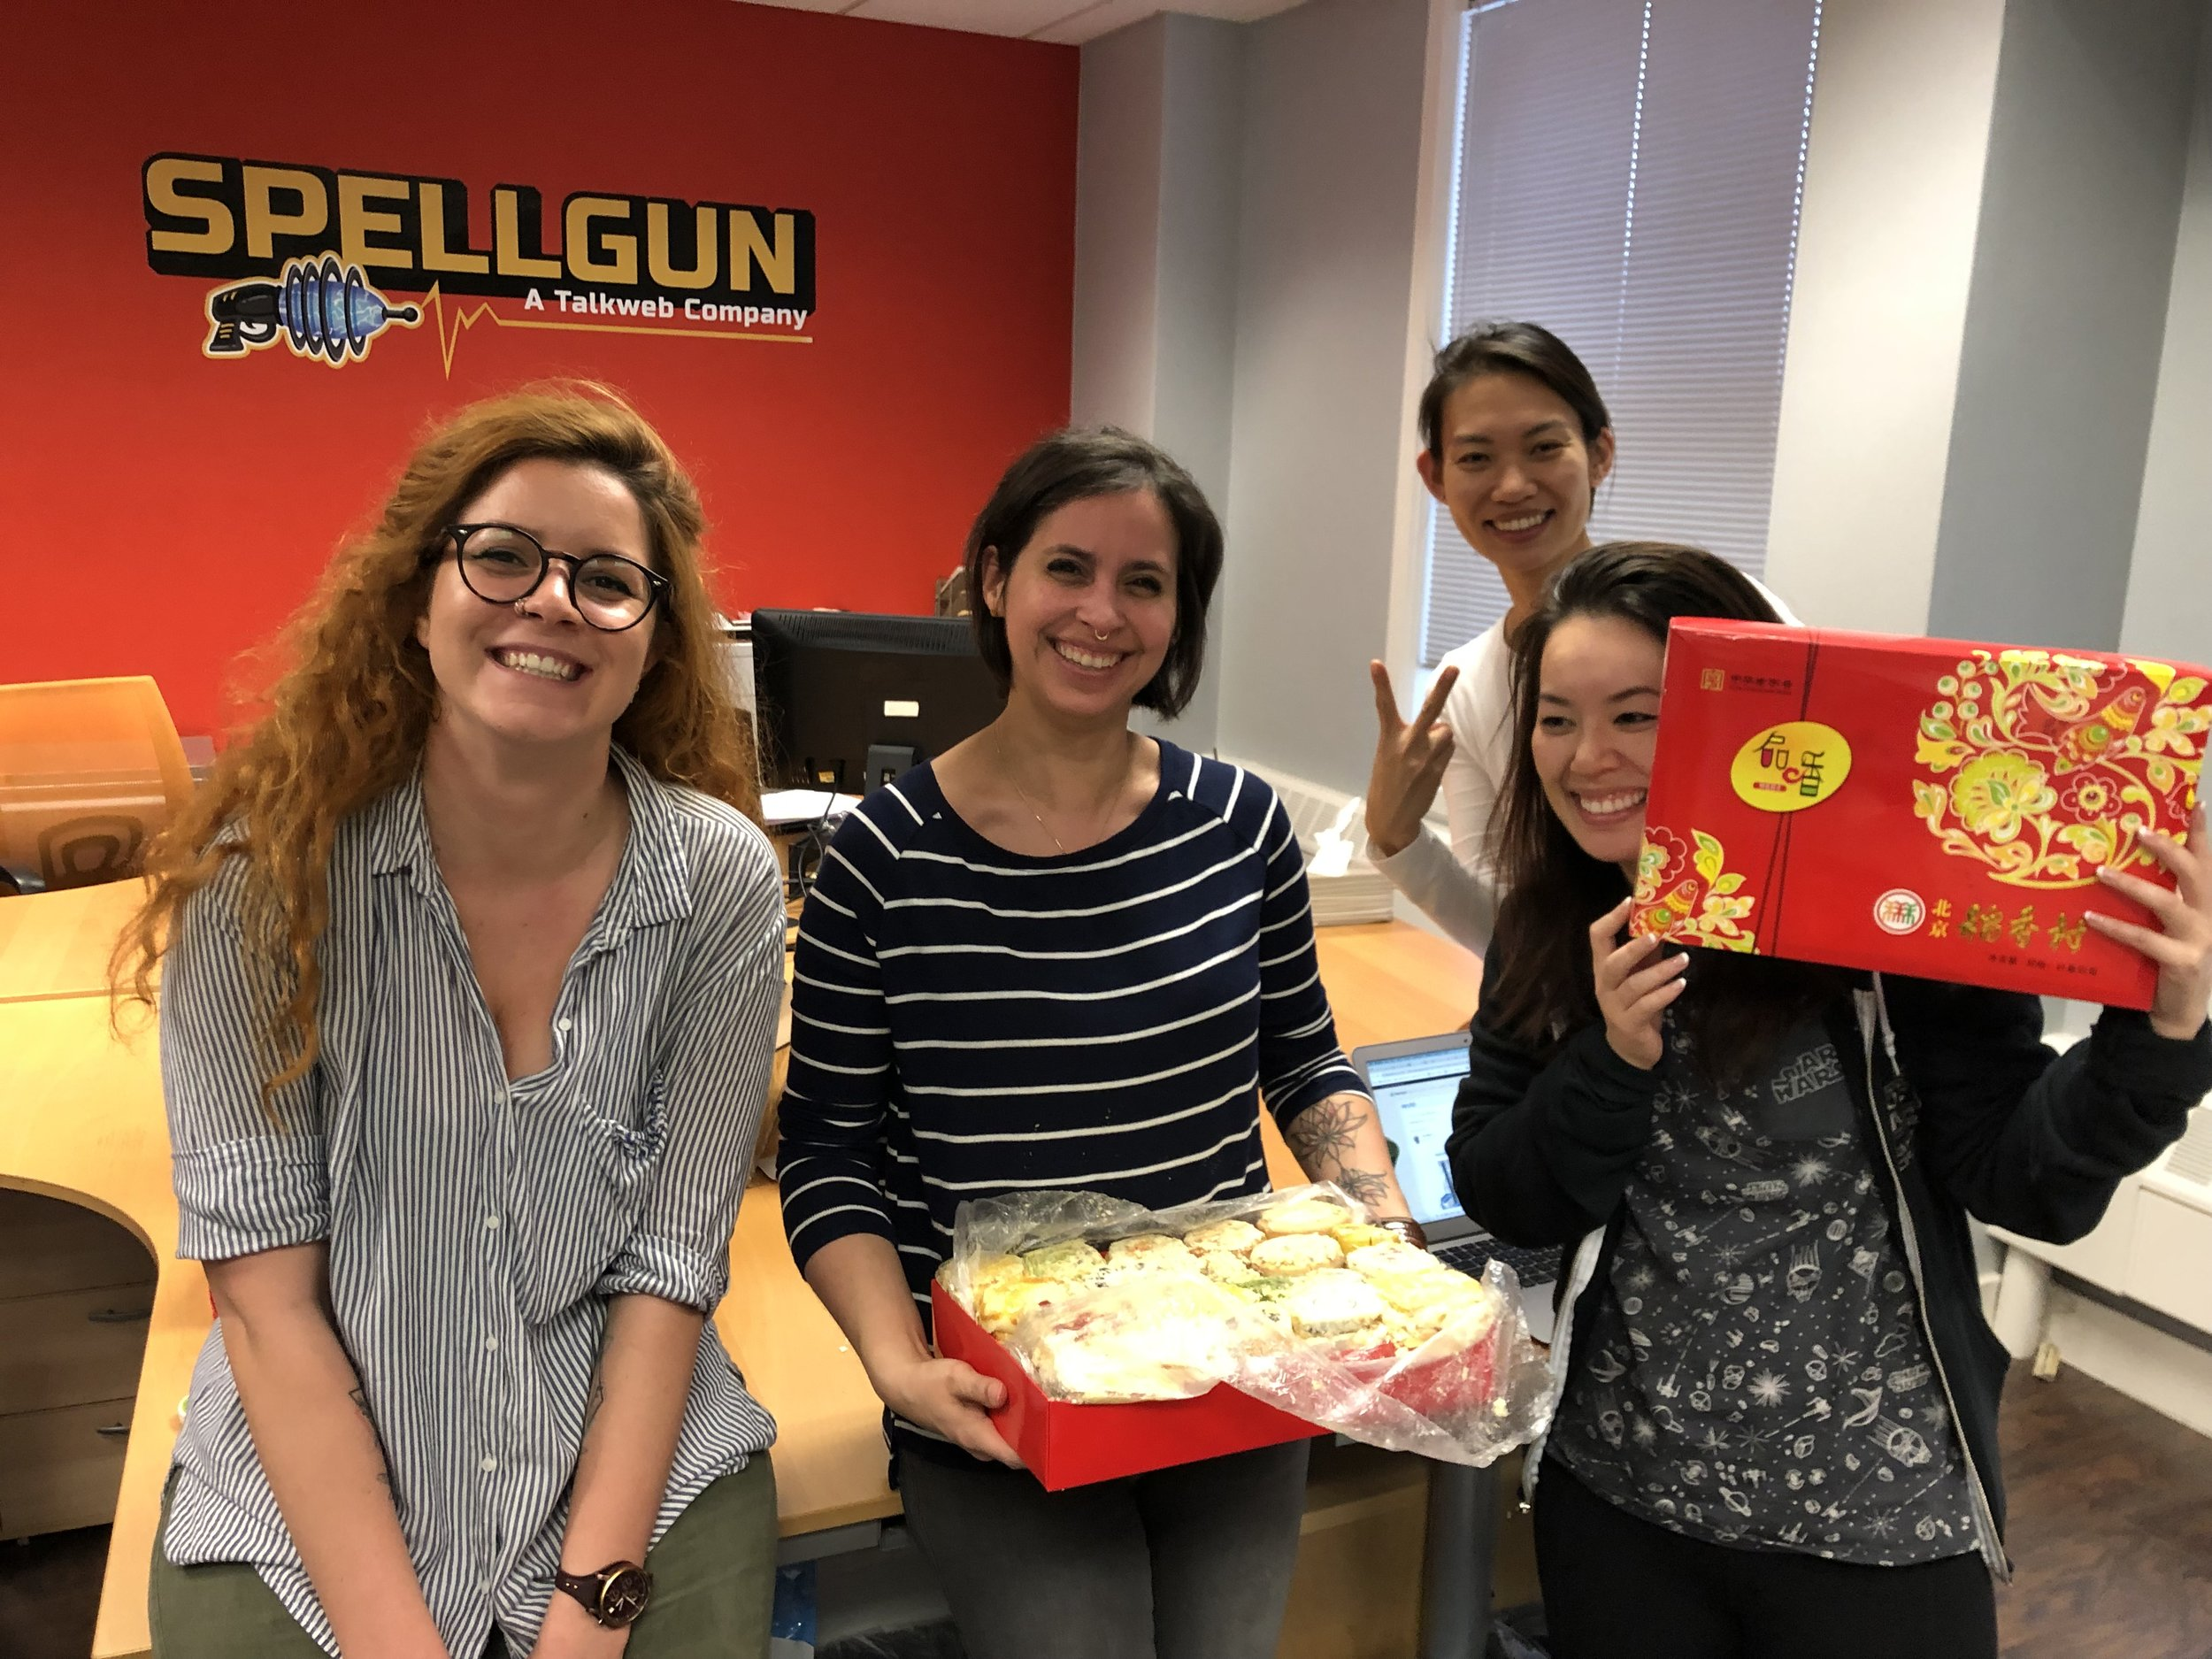 The ladies from the US office enjoying some New Year Dim Sum! (Thank you, Seasun!)